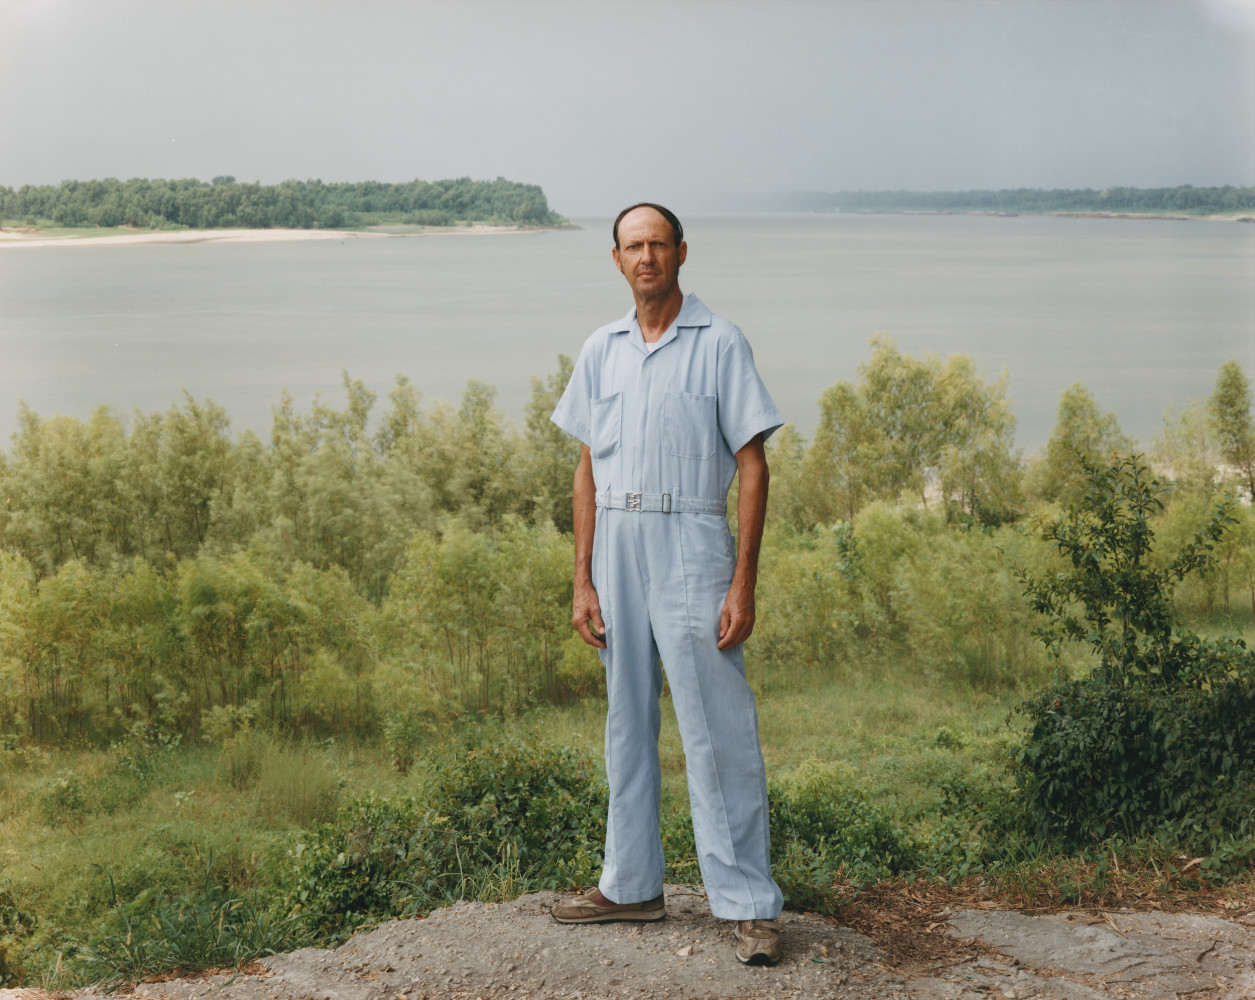 Joel Sternfeld, 'A Man on the Banks of the Mississippi, Baton Rouge, Louisiana, August 1985', 1985